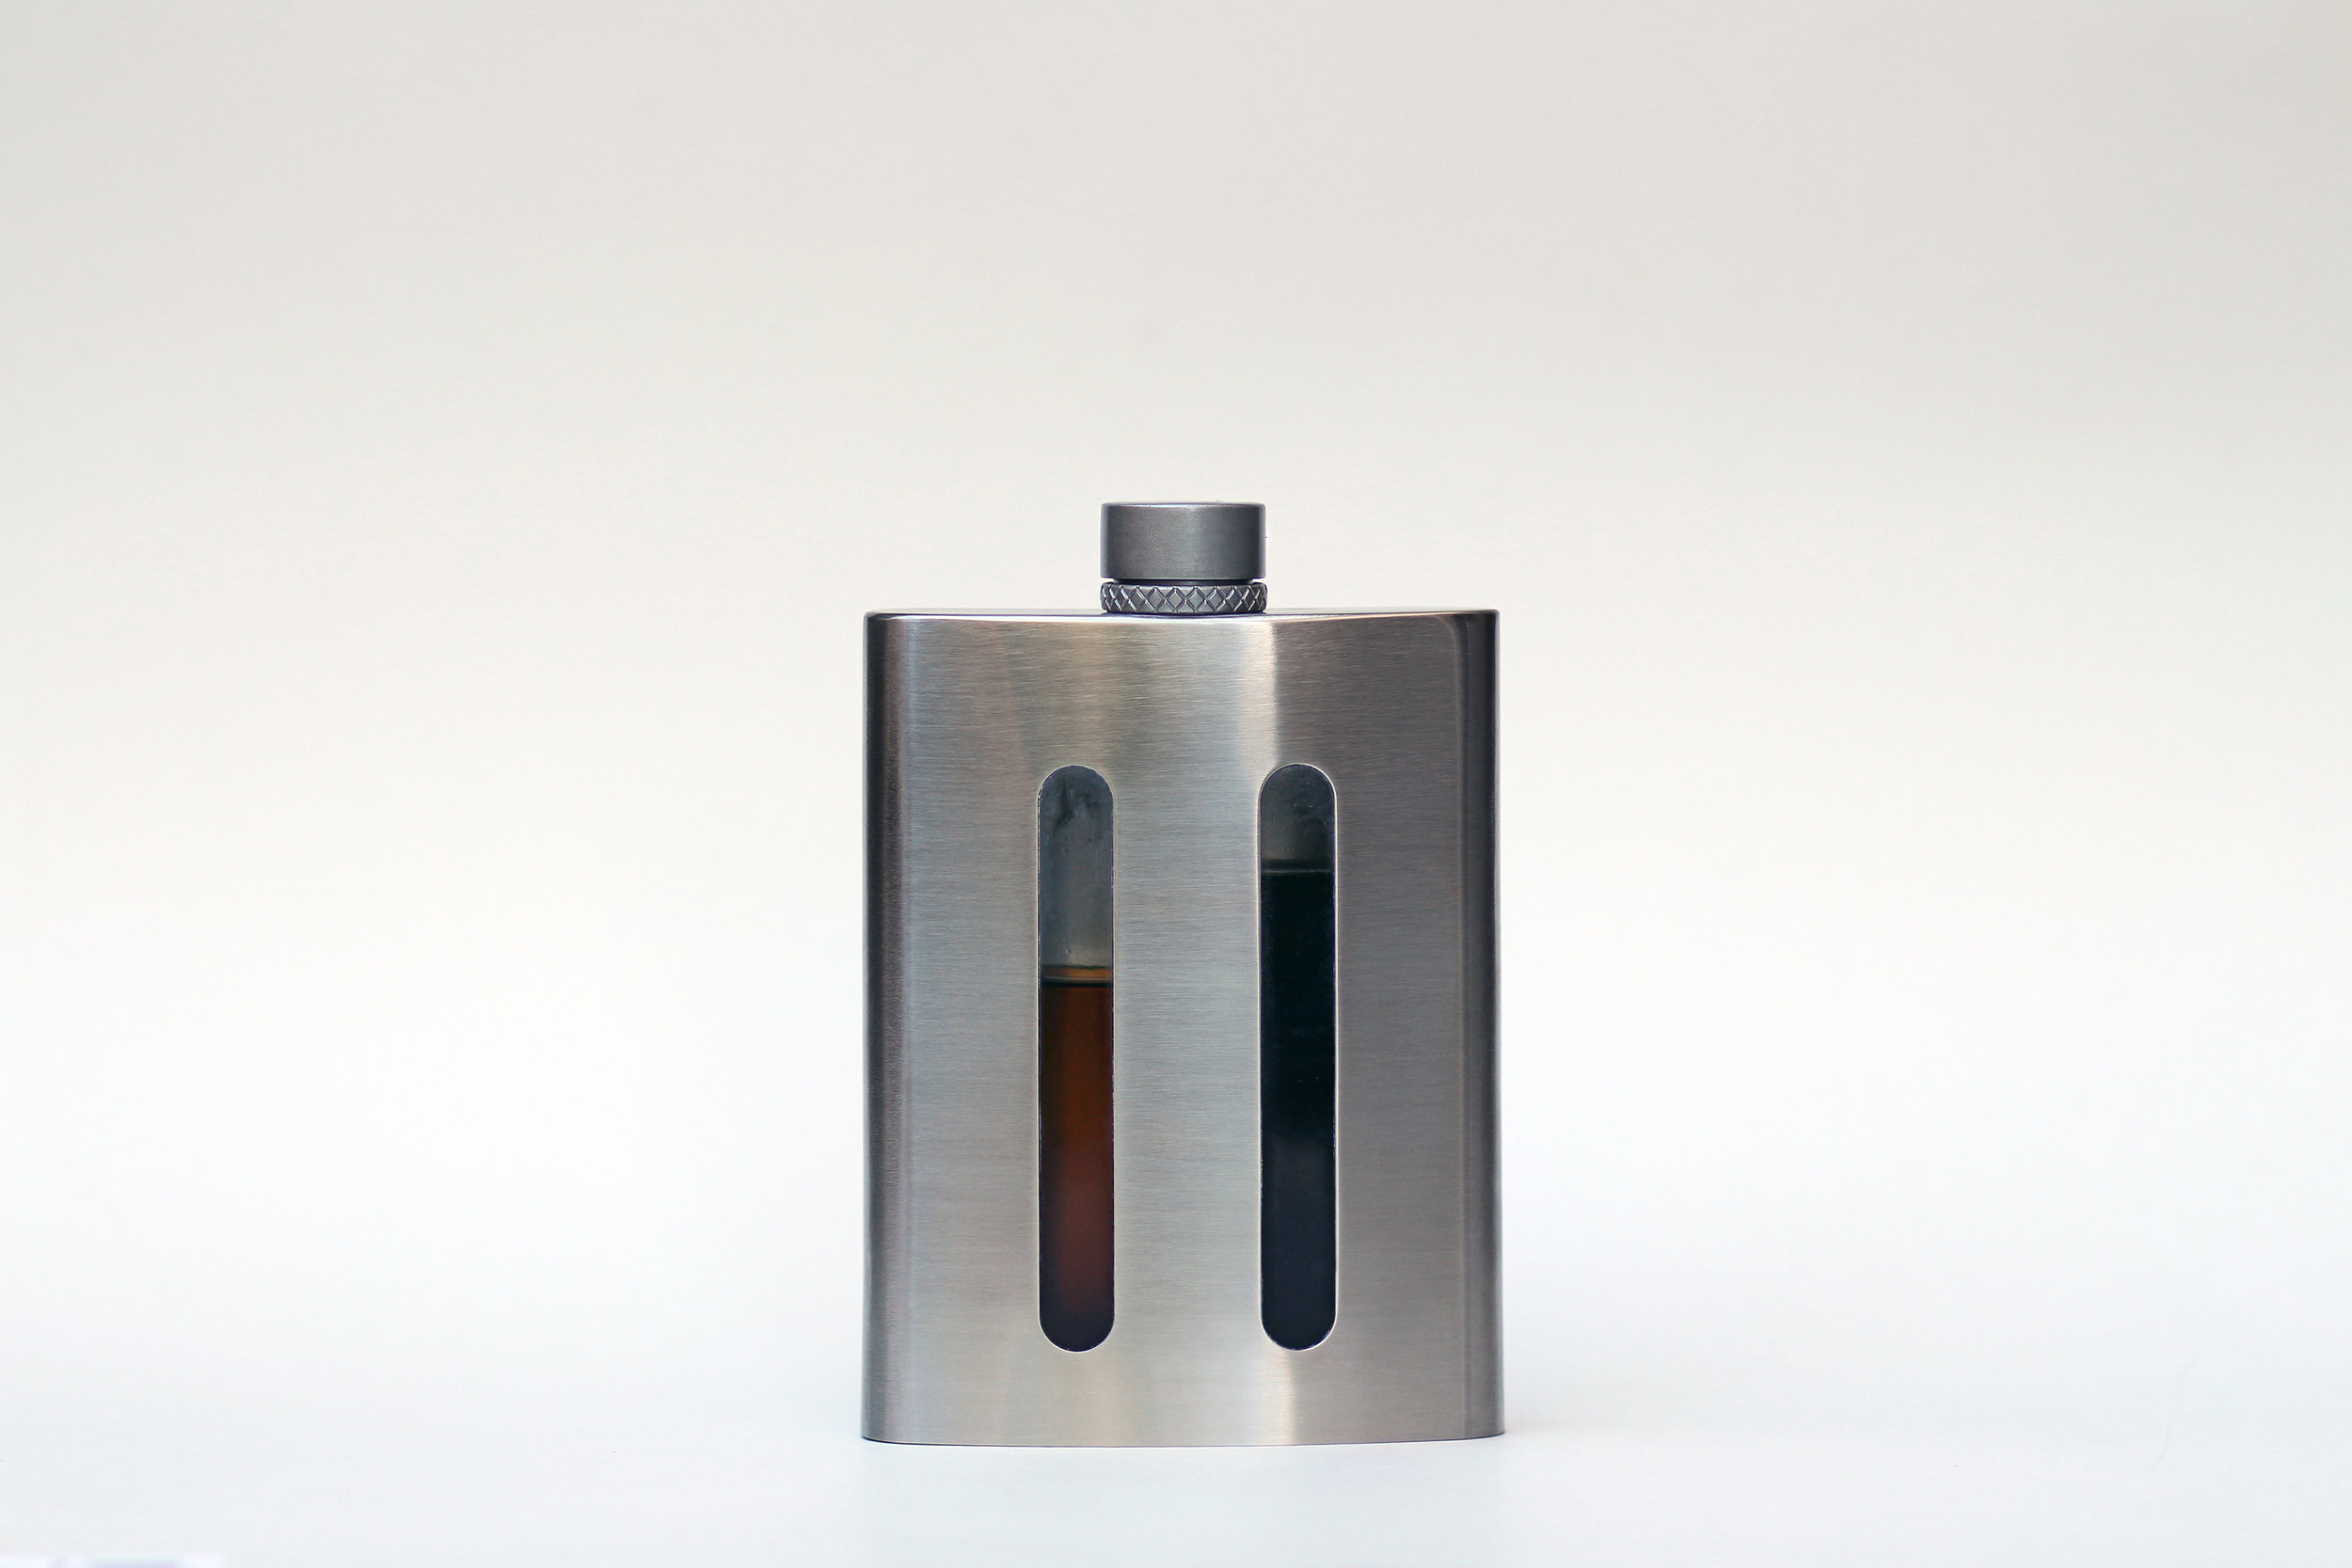 Dividere's Shareable Flask - Every working woman needs a hip flask to help destress sometimes right? Help the newly graduated sip her favorite spirits with this high quality stainless steel flask. Dividere Stainless offers an innovative feature on their flask that is new to the scene.  The flasks unique top allows its user to be able to switch between two types of liquor on the fly. Simply twist the top and enjoy one side, twist again for the other, then one more twist to allow both sides to pour at the same time. Visit Dividere Stainless to check out their designs which include a selection of stainless steel and leather bound flasks. This is a great gift for couples who like to spend nights on the town together.